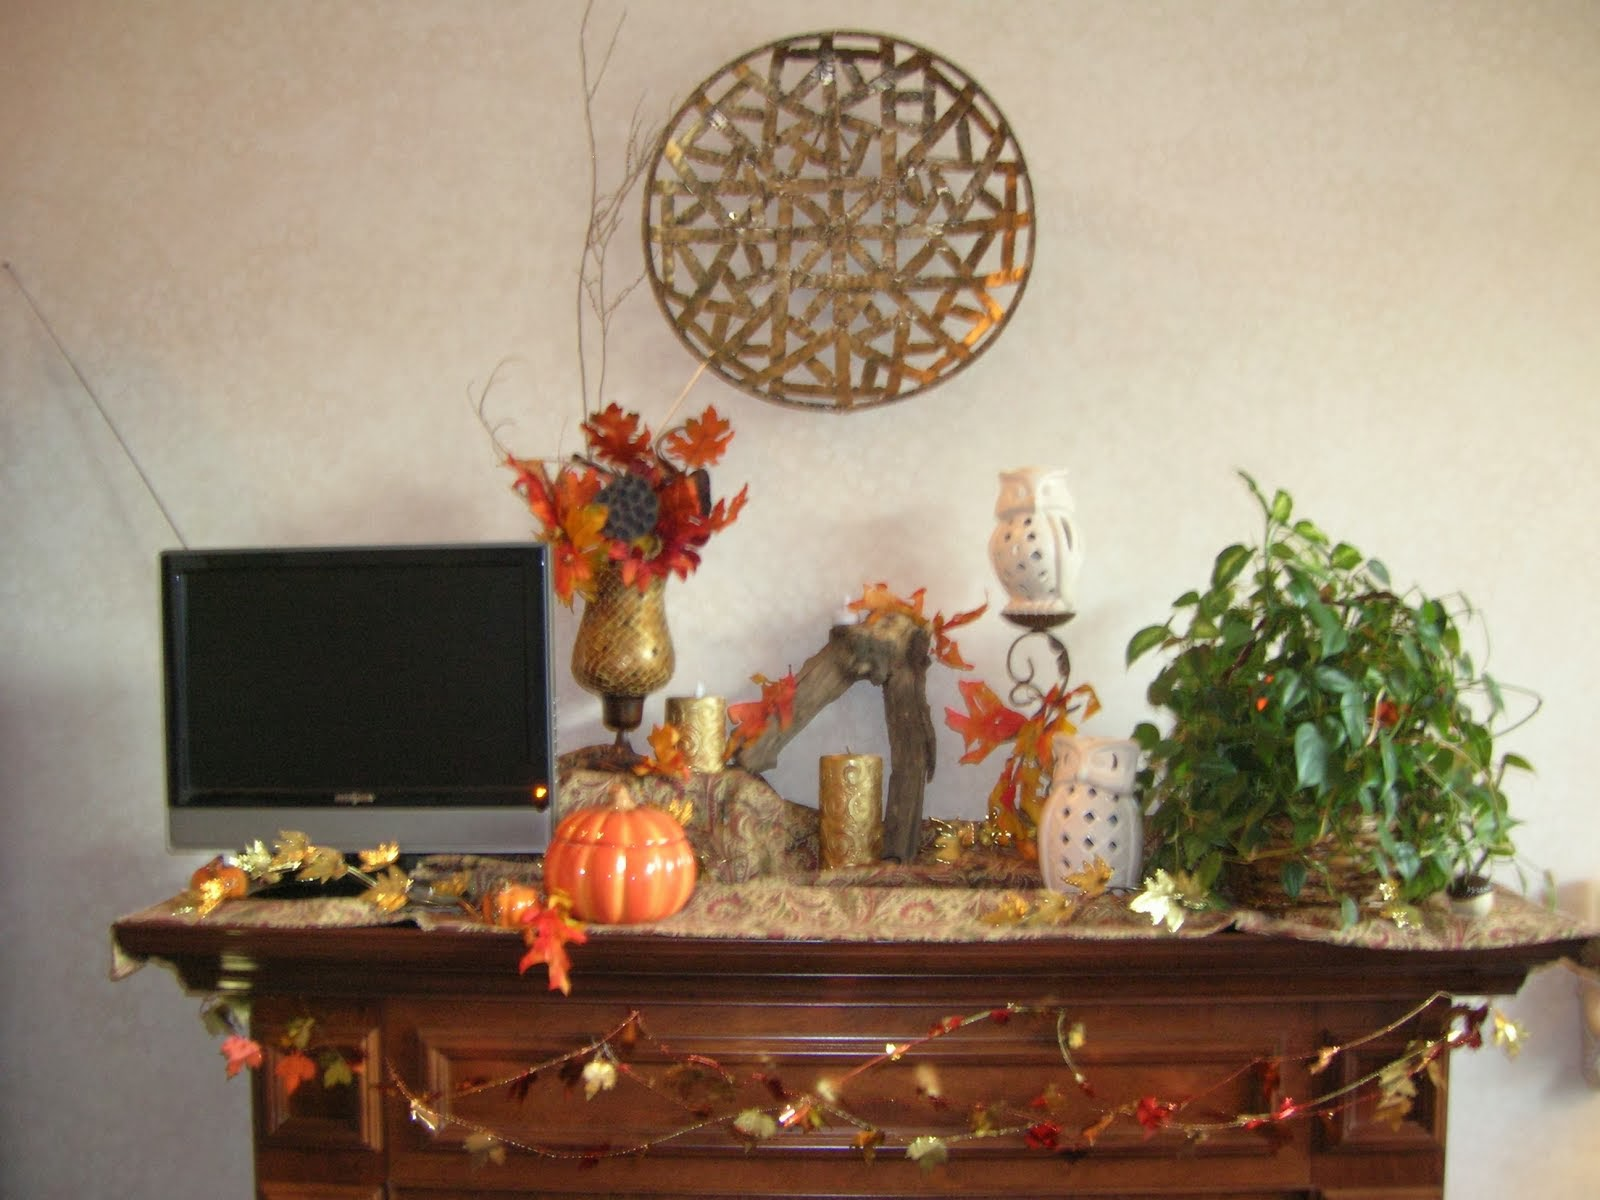 2013 Autumn Mantle/Mantel